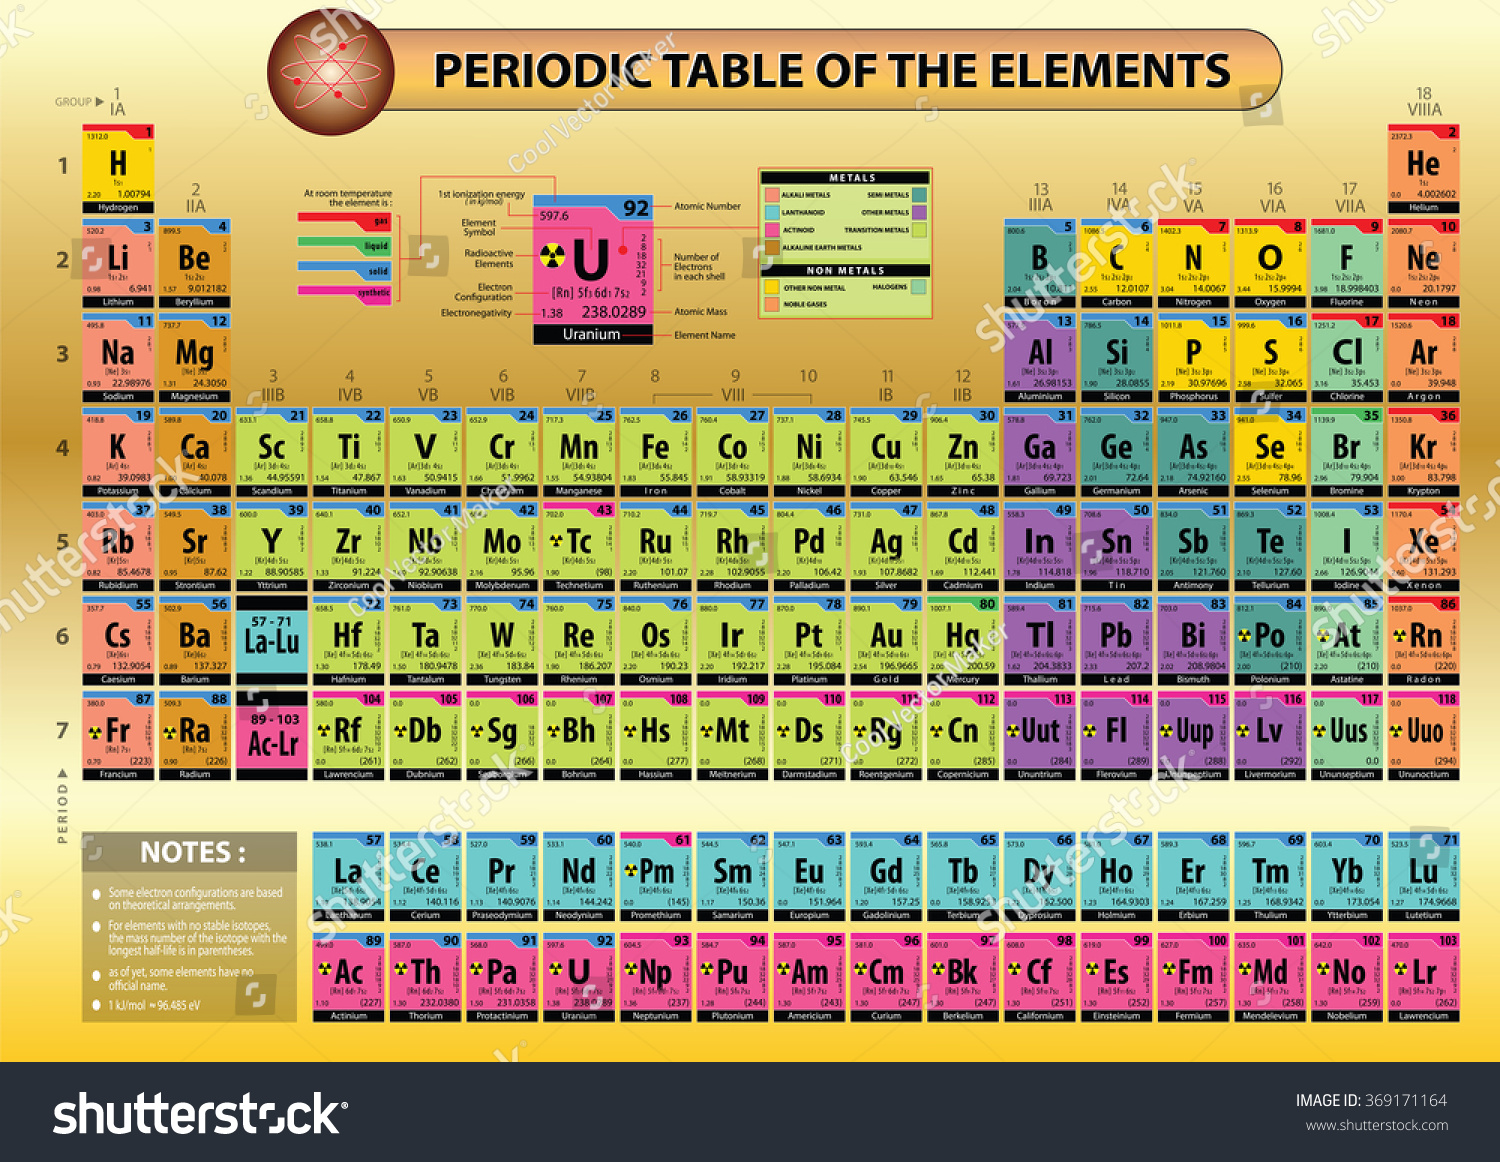 Periodic table elements element name element stock vector 2018 periodic table of elements with element name element symbols atomic number atomic urtaz